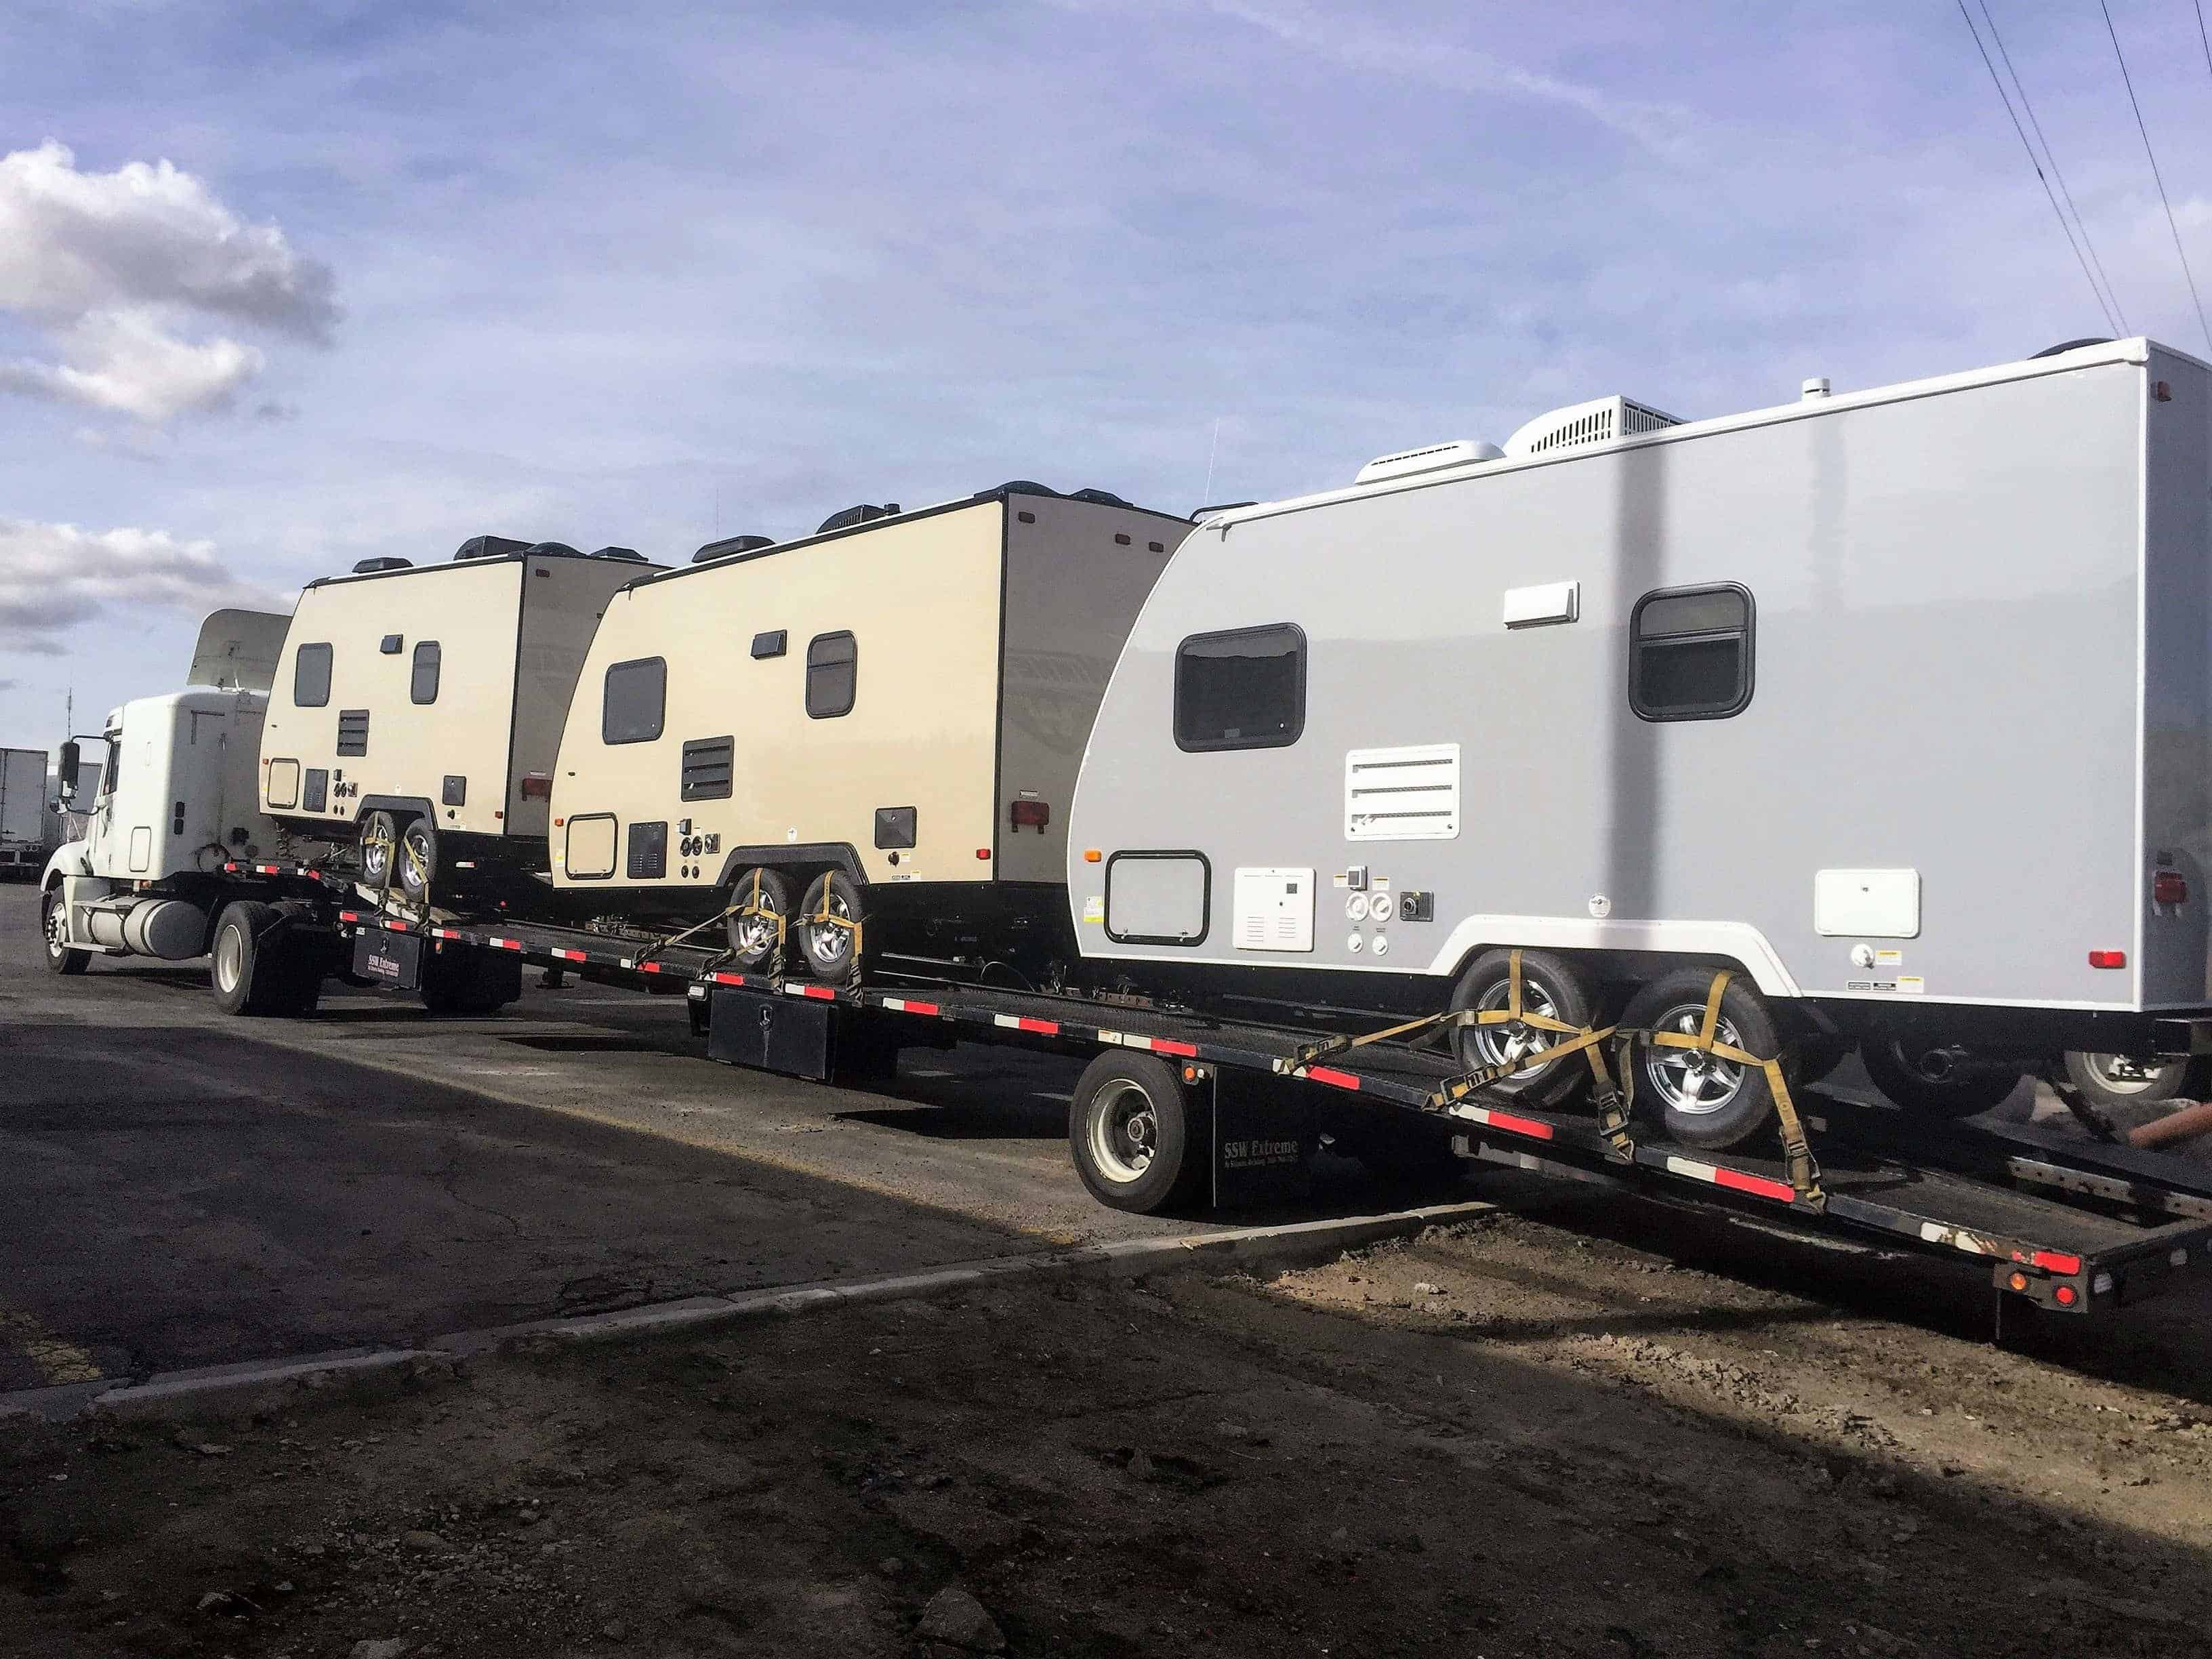 Travel Trailers Loaded for Transport